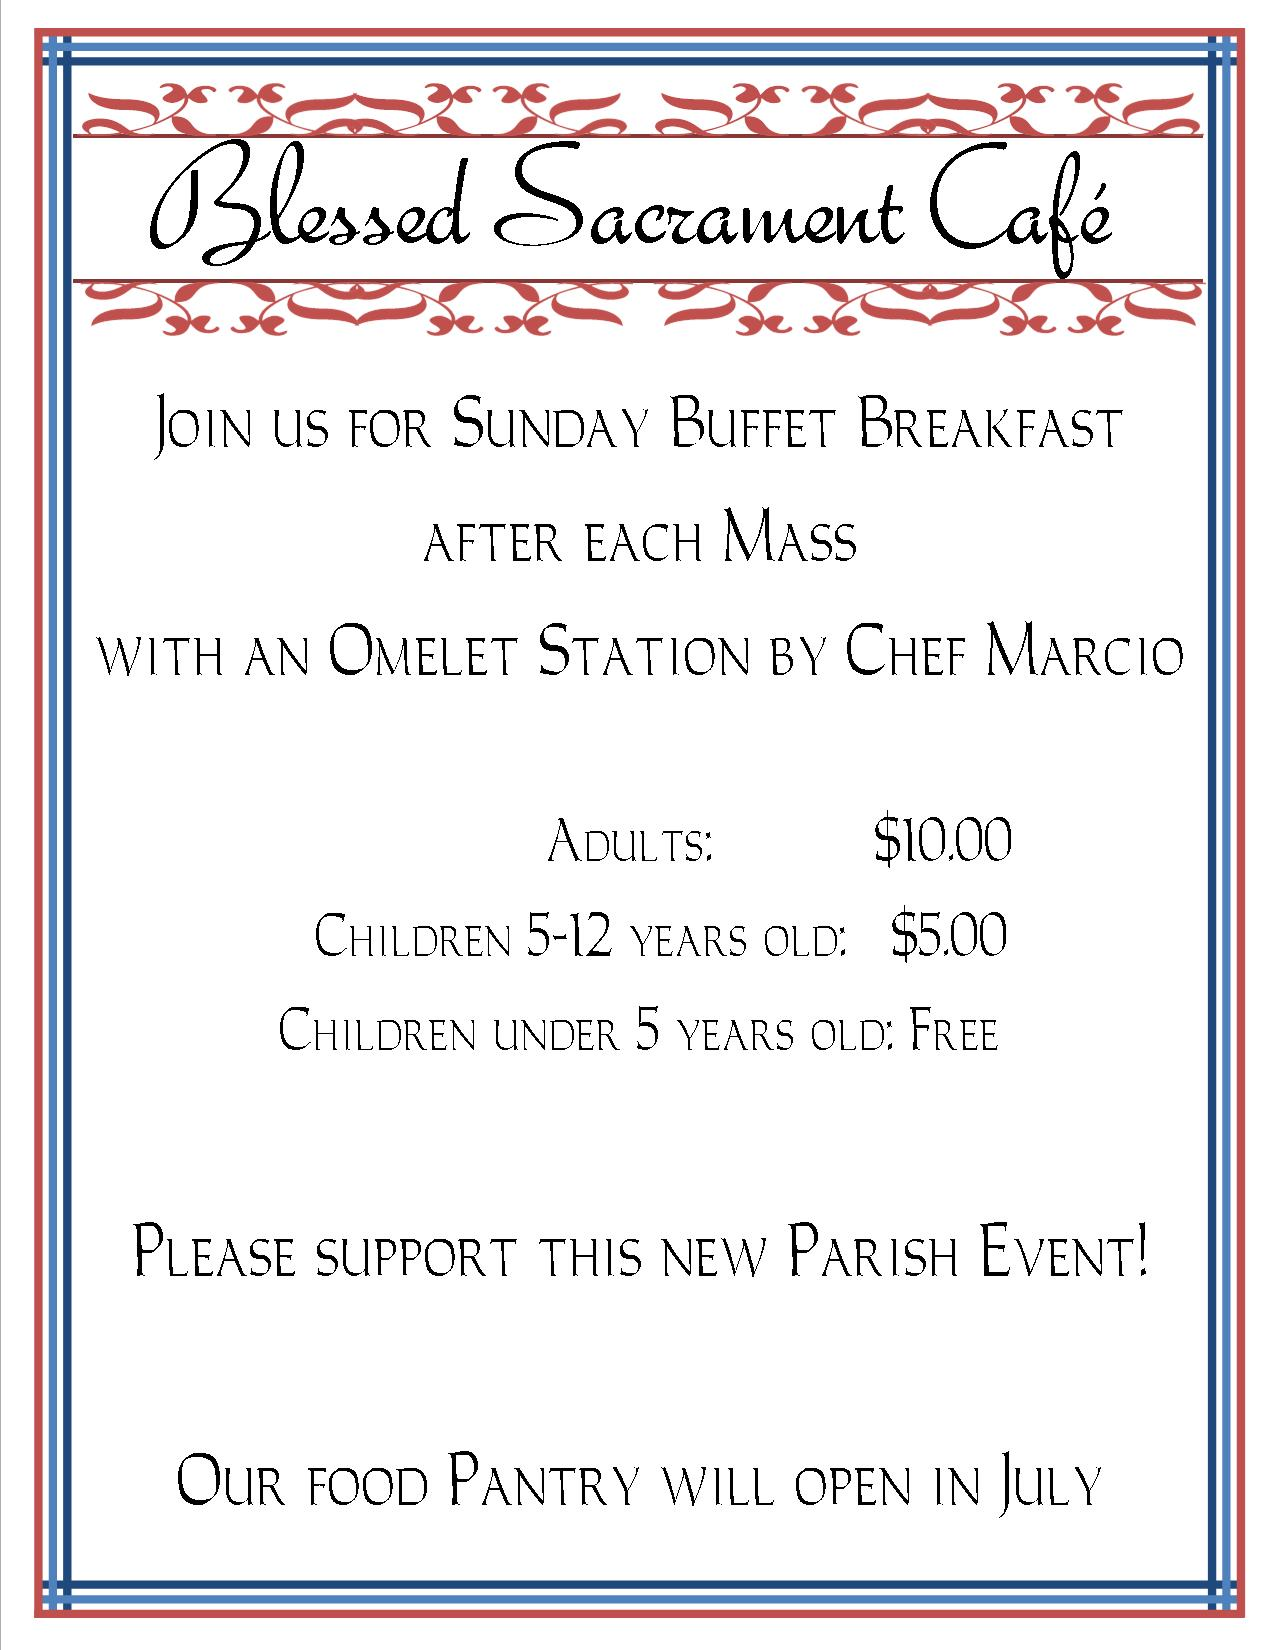 image-737934-buffet_breakfast_flyer.jpg